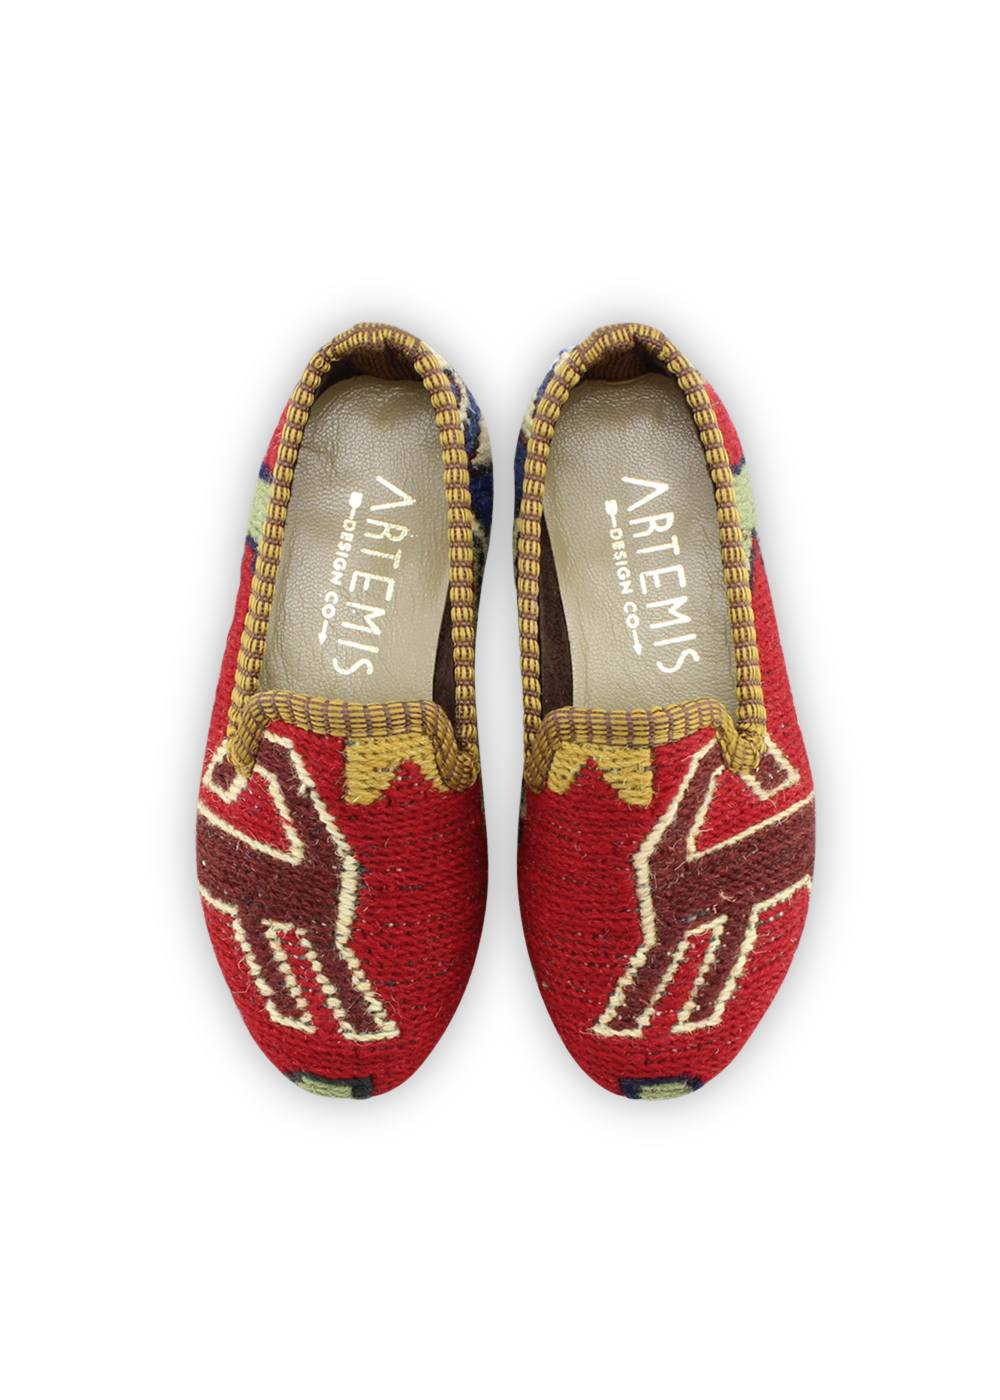 Children's Shoes - Children's Sumak Kilim Loafers - Size 26